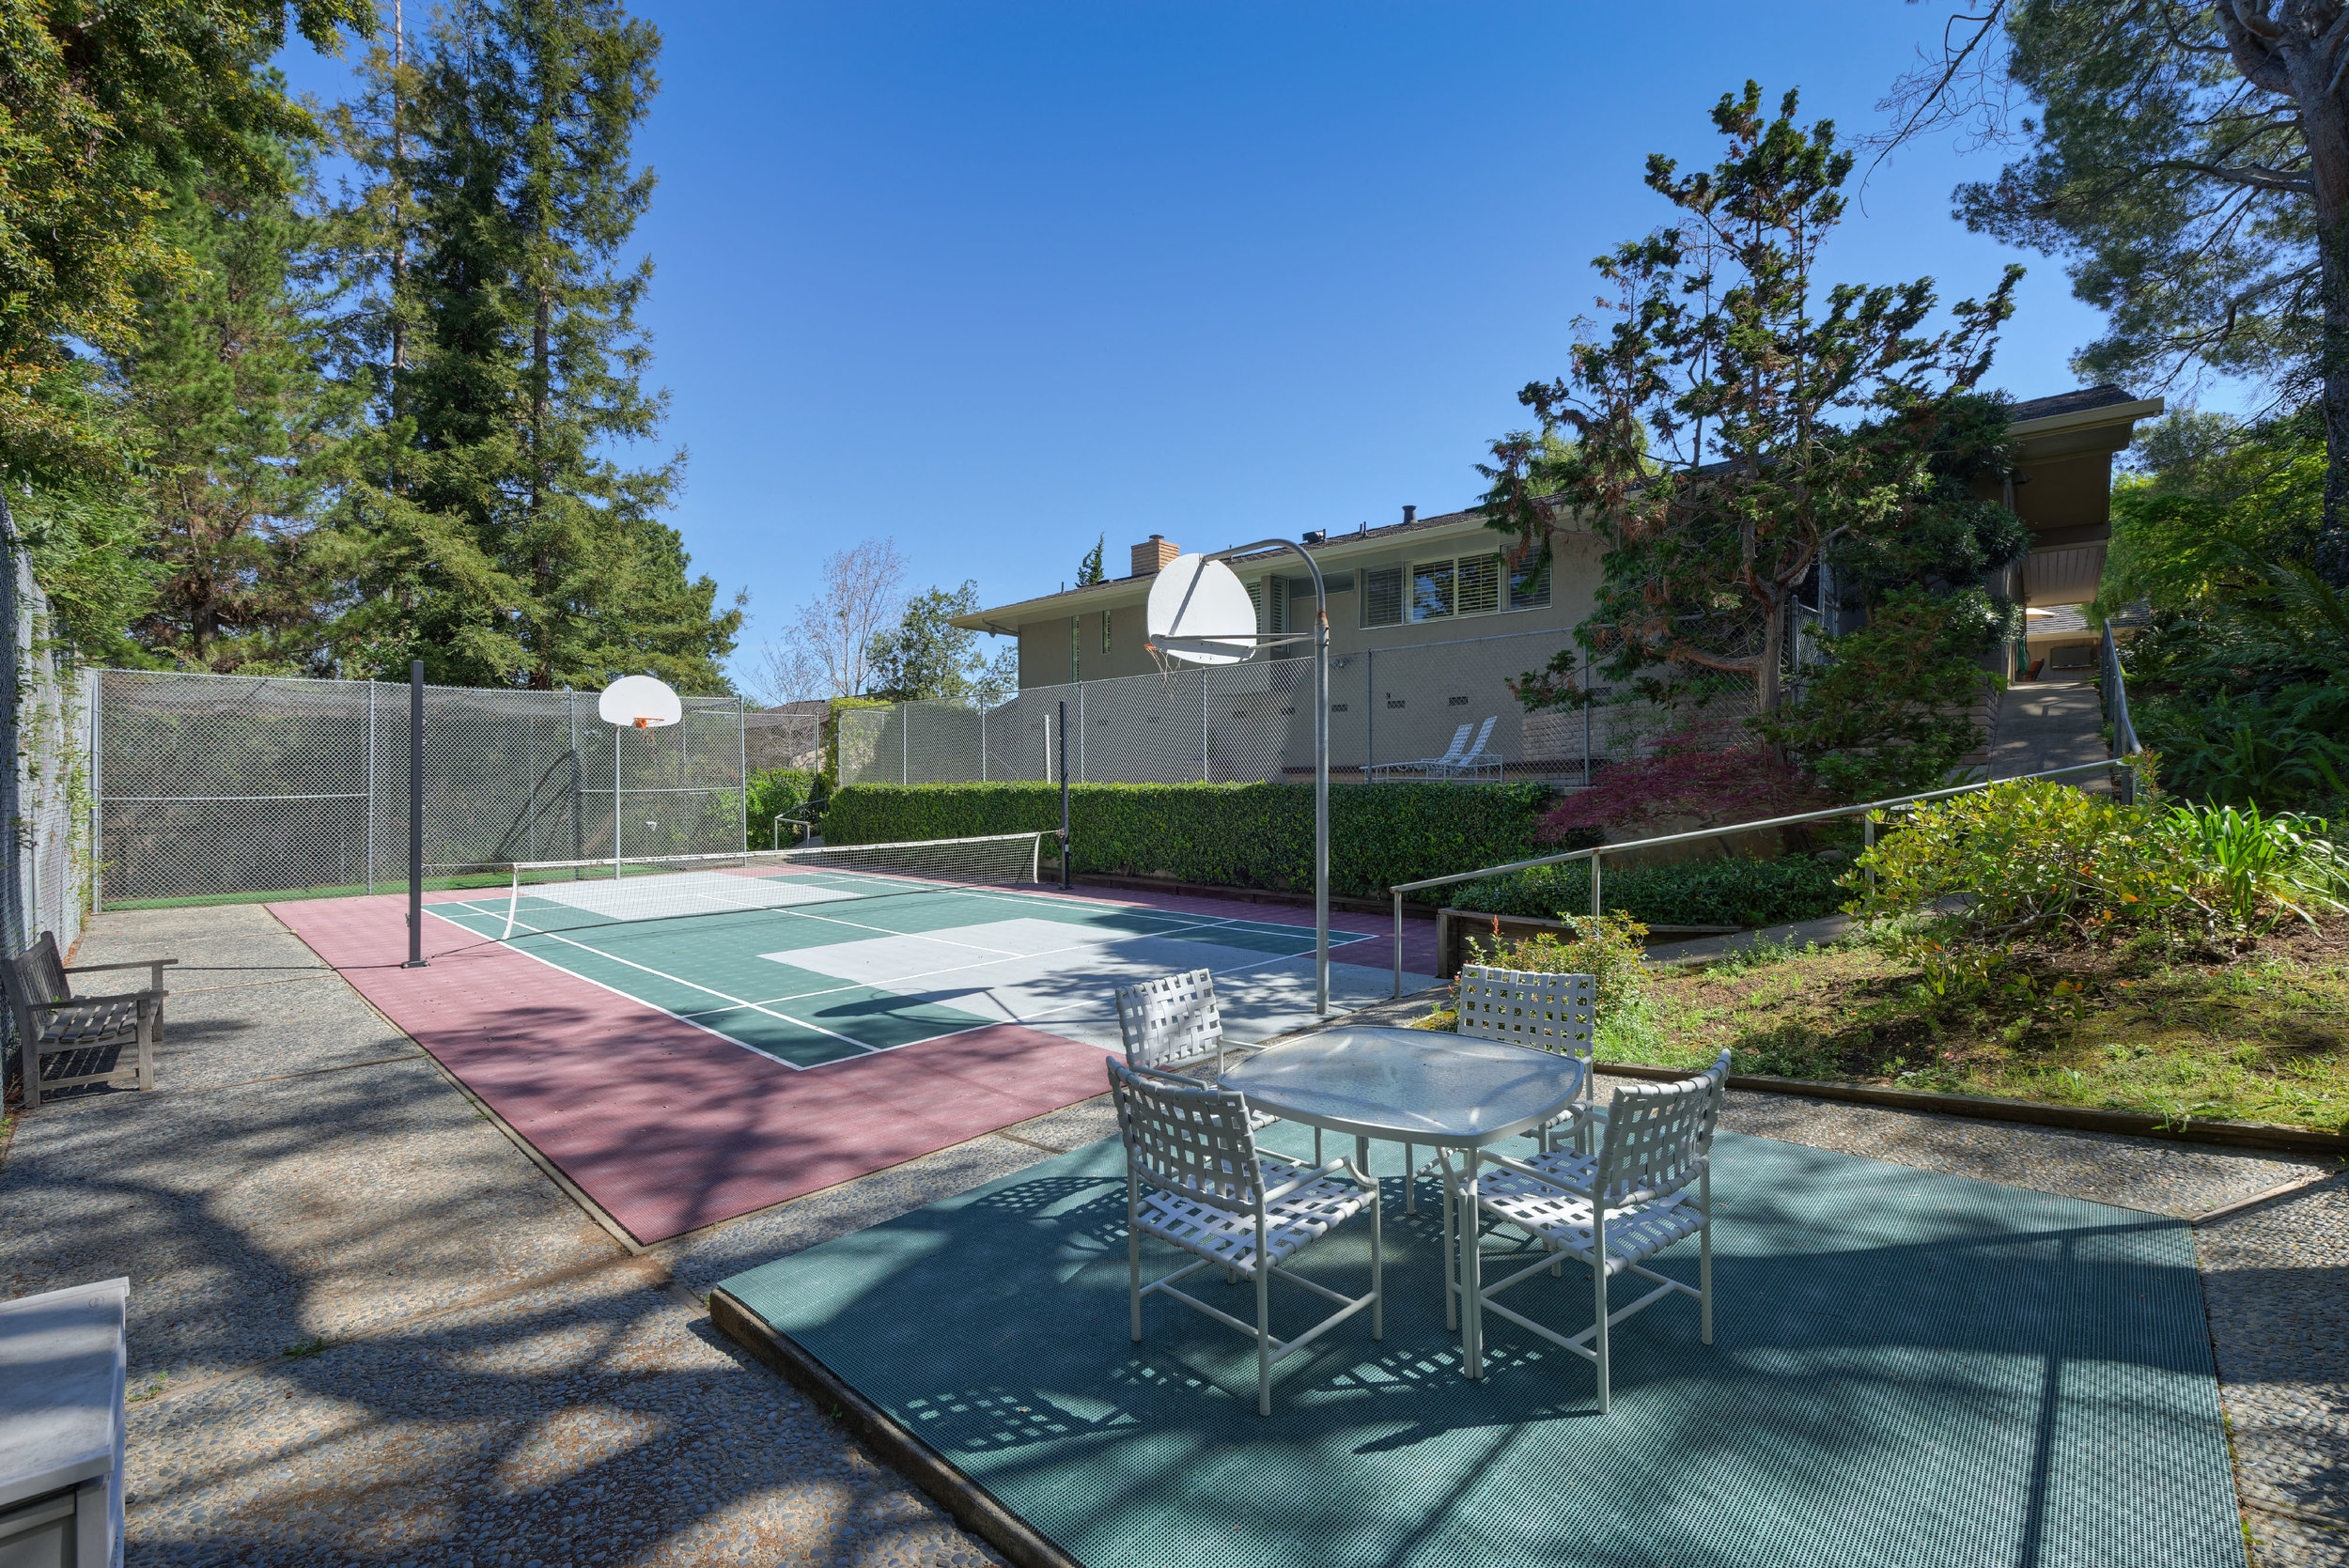 33_Back_Tennis court towards pool.jpg